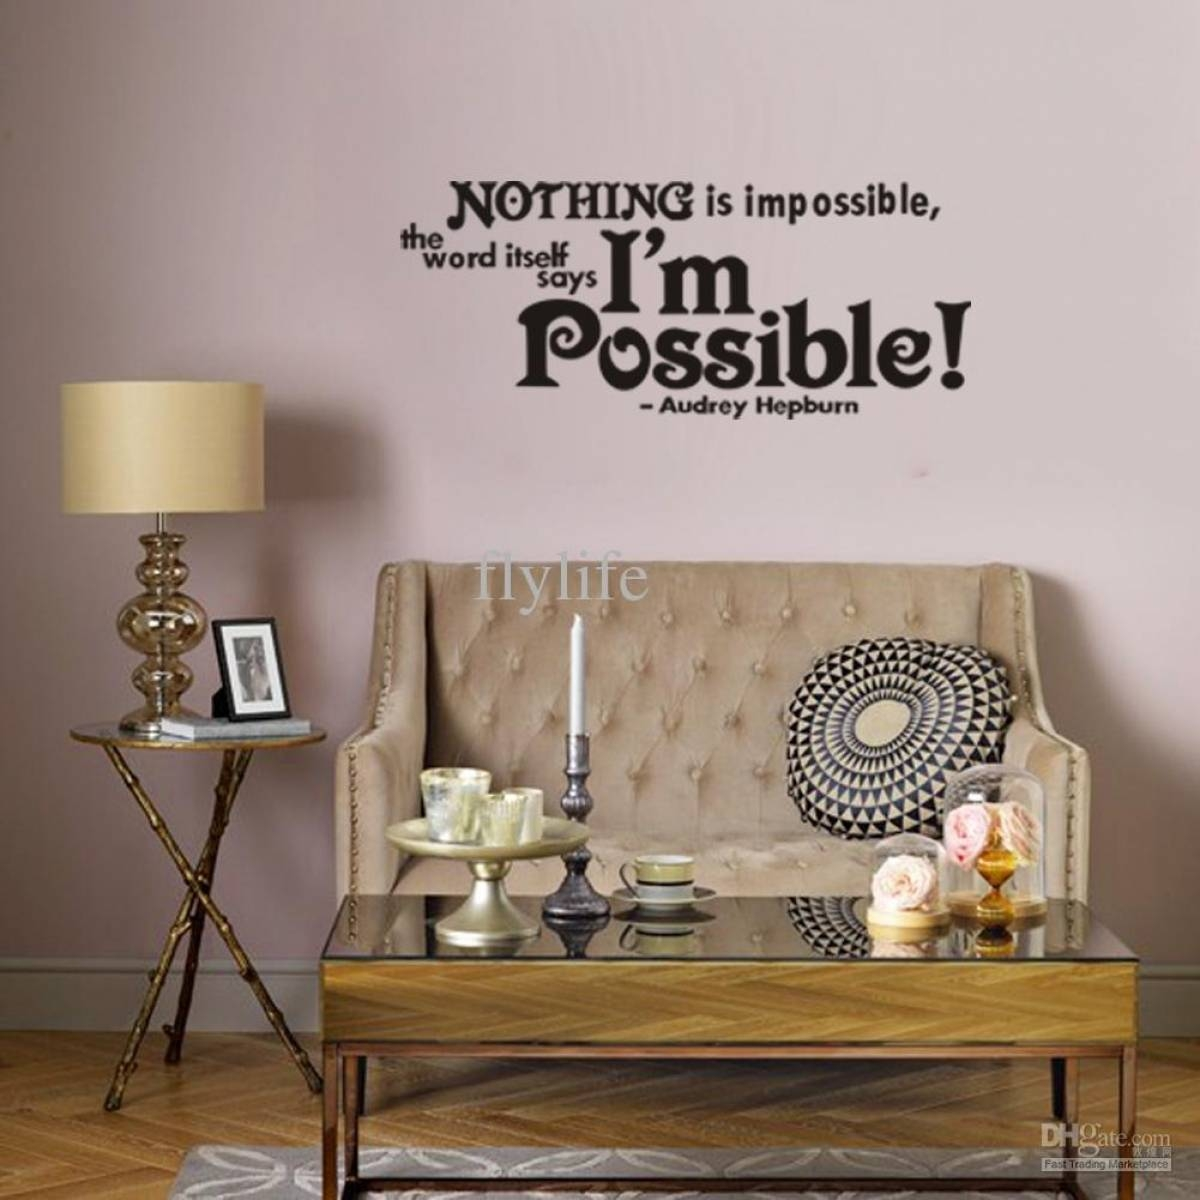 25 Best Collection Of Walmart Wall Stickers